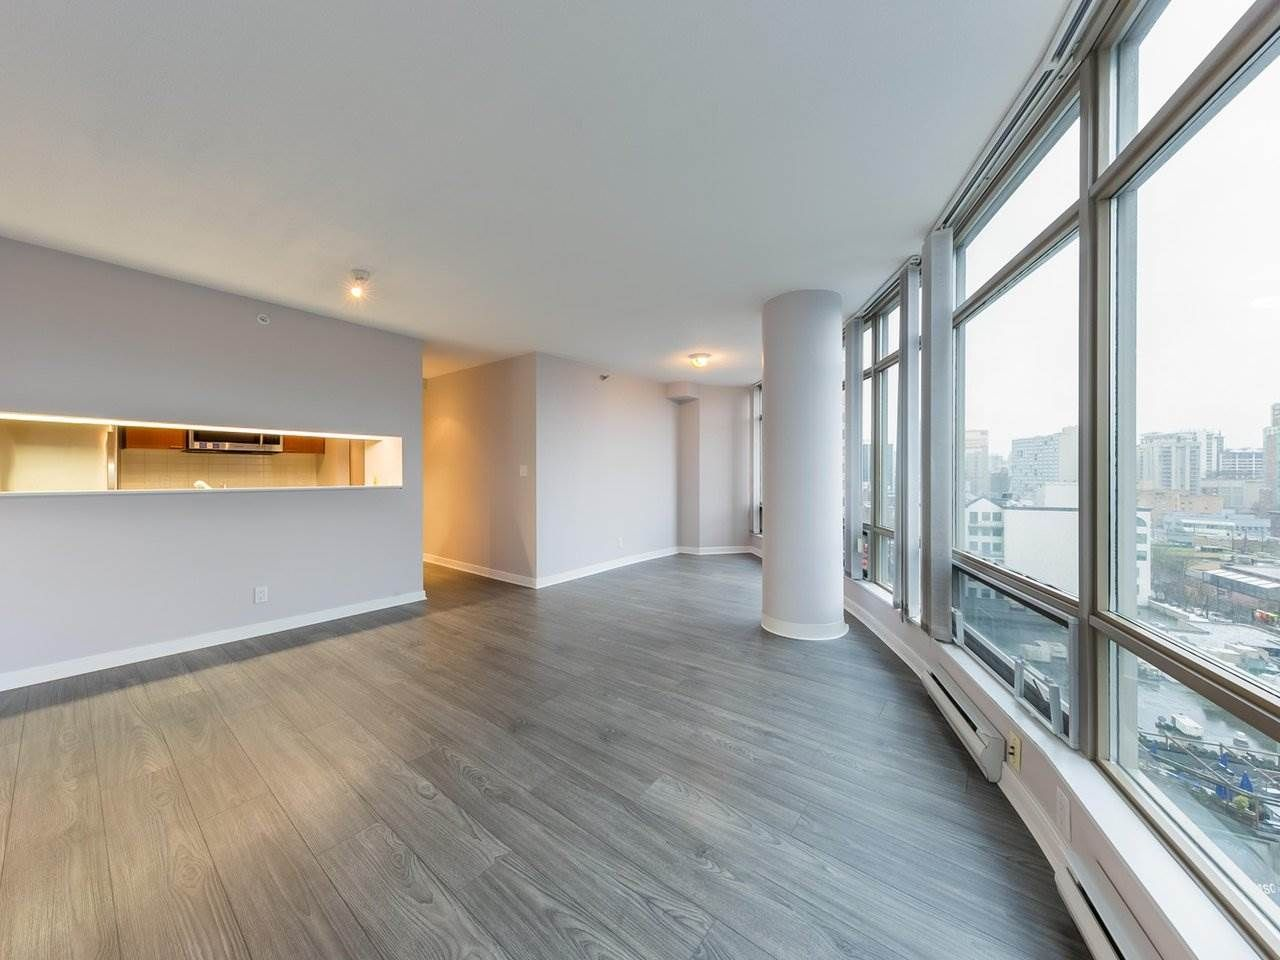 """Photo 10: Photos: 1202 1200 ALBERNI Street in Vancouver: West End VW Condo for sale in """"Palisades"""" (Vancouver West)  : MLS®# R2527140"""